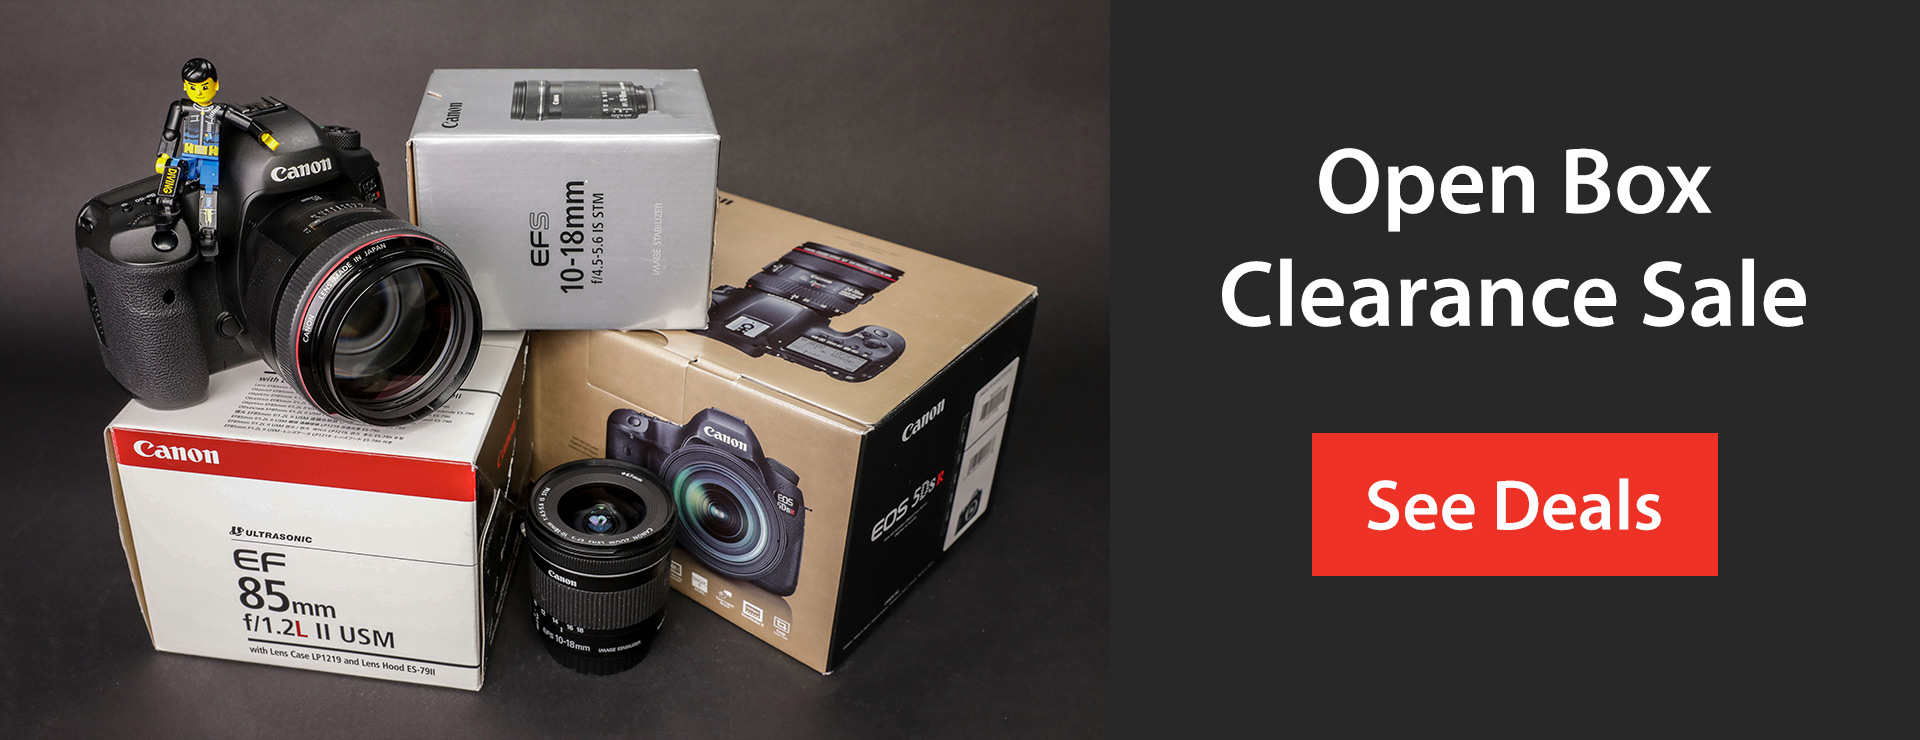 Open Box Clearance Sale